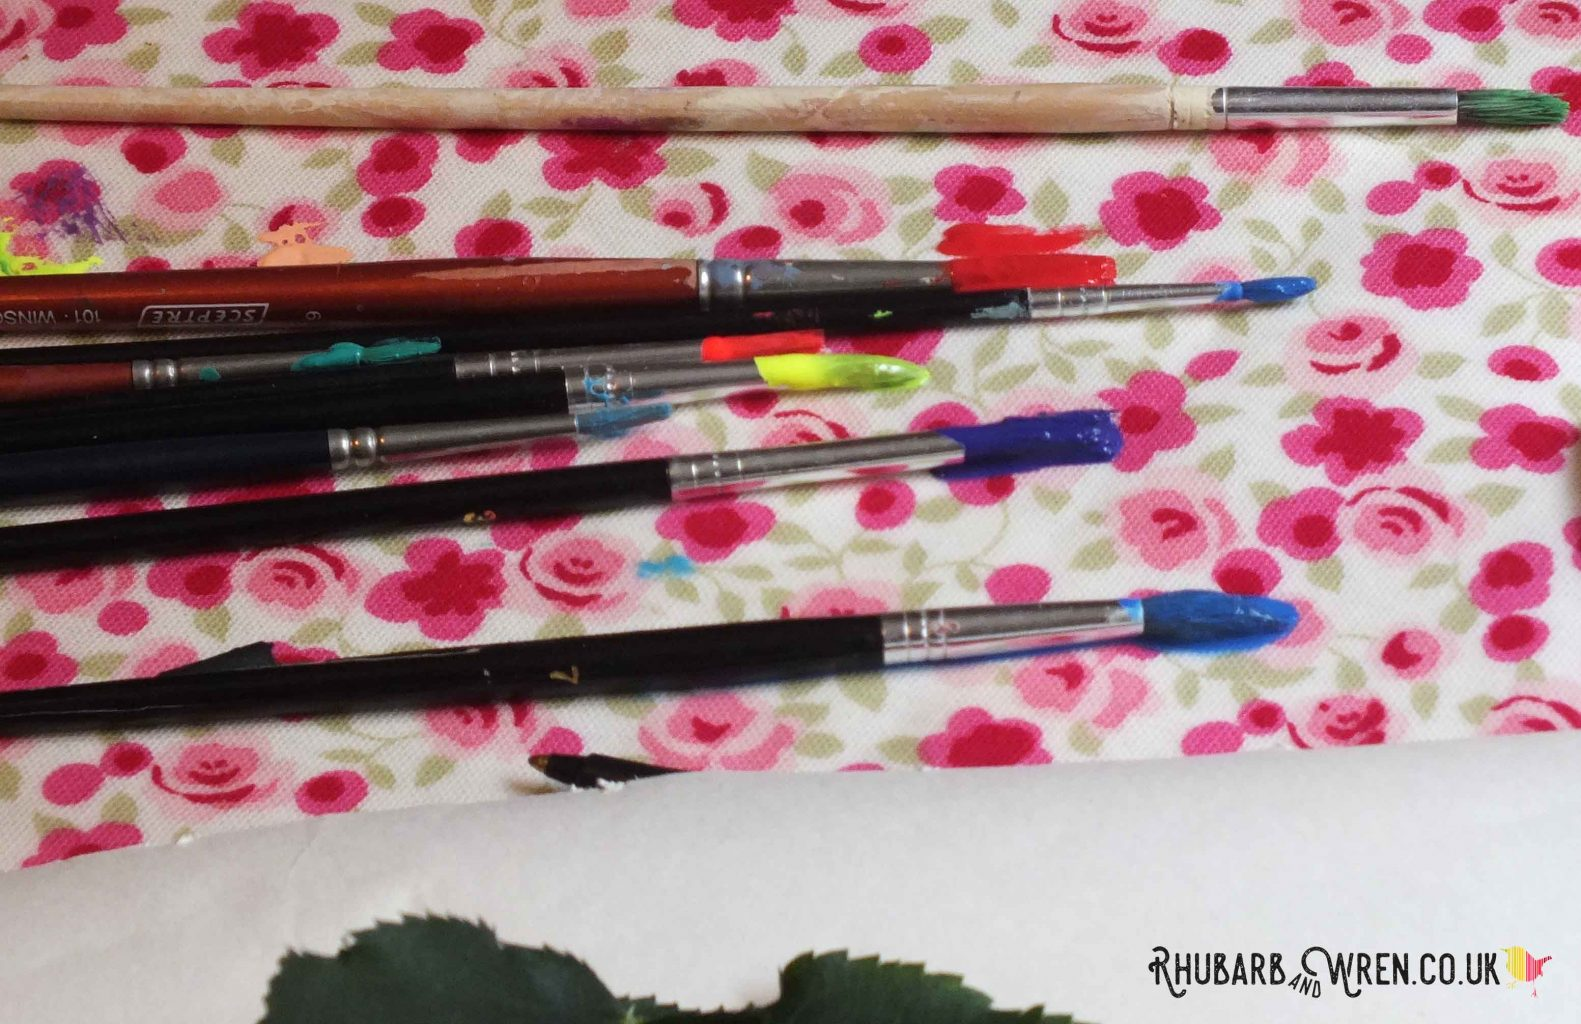 paintbrushes with bright paint on bristles